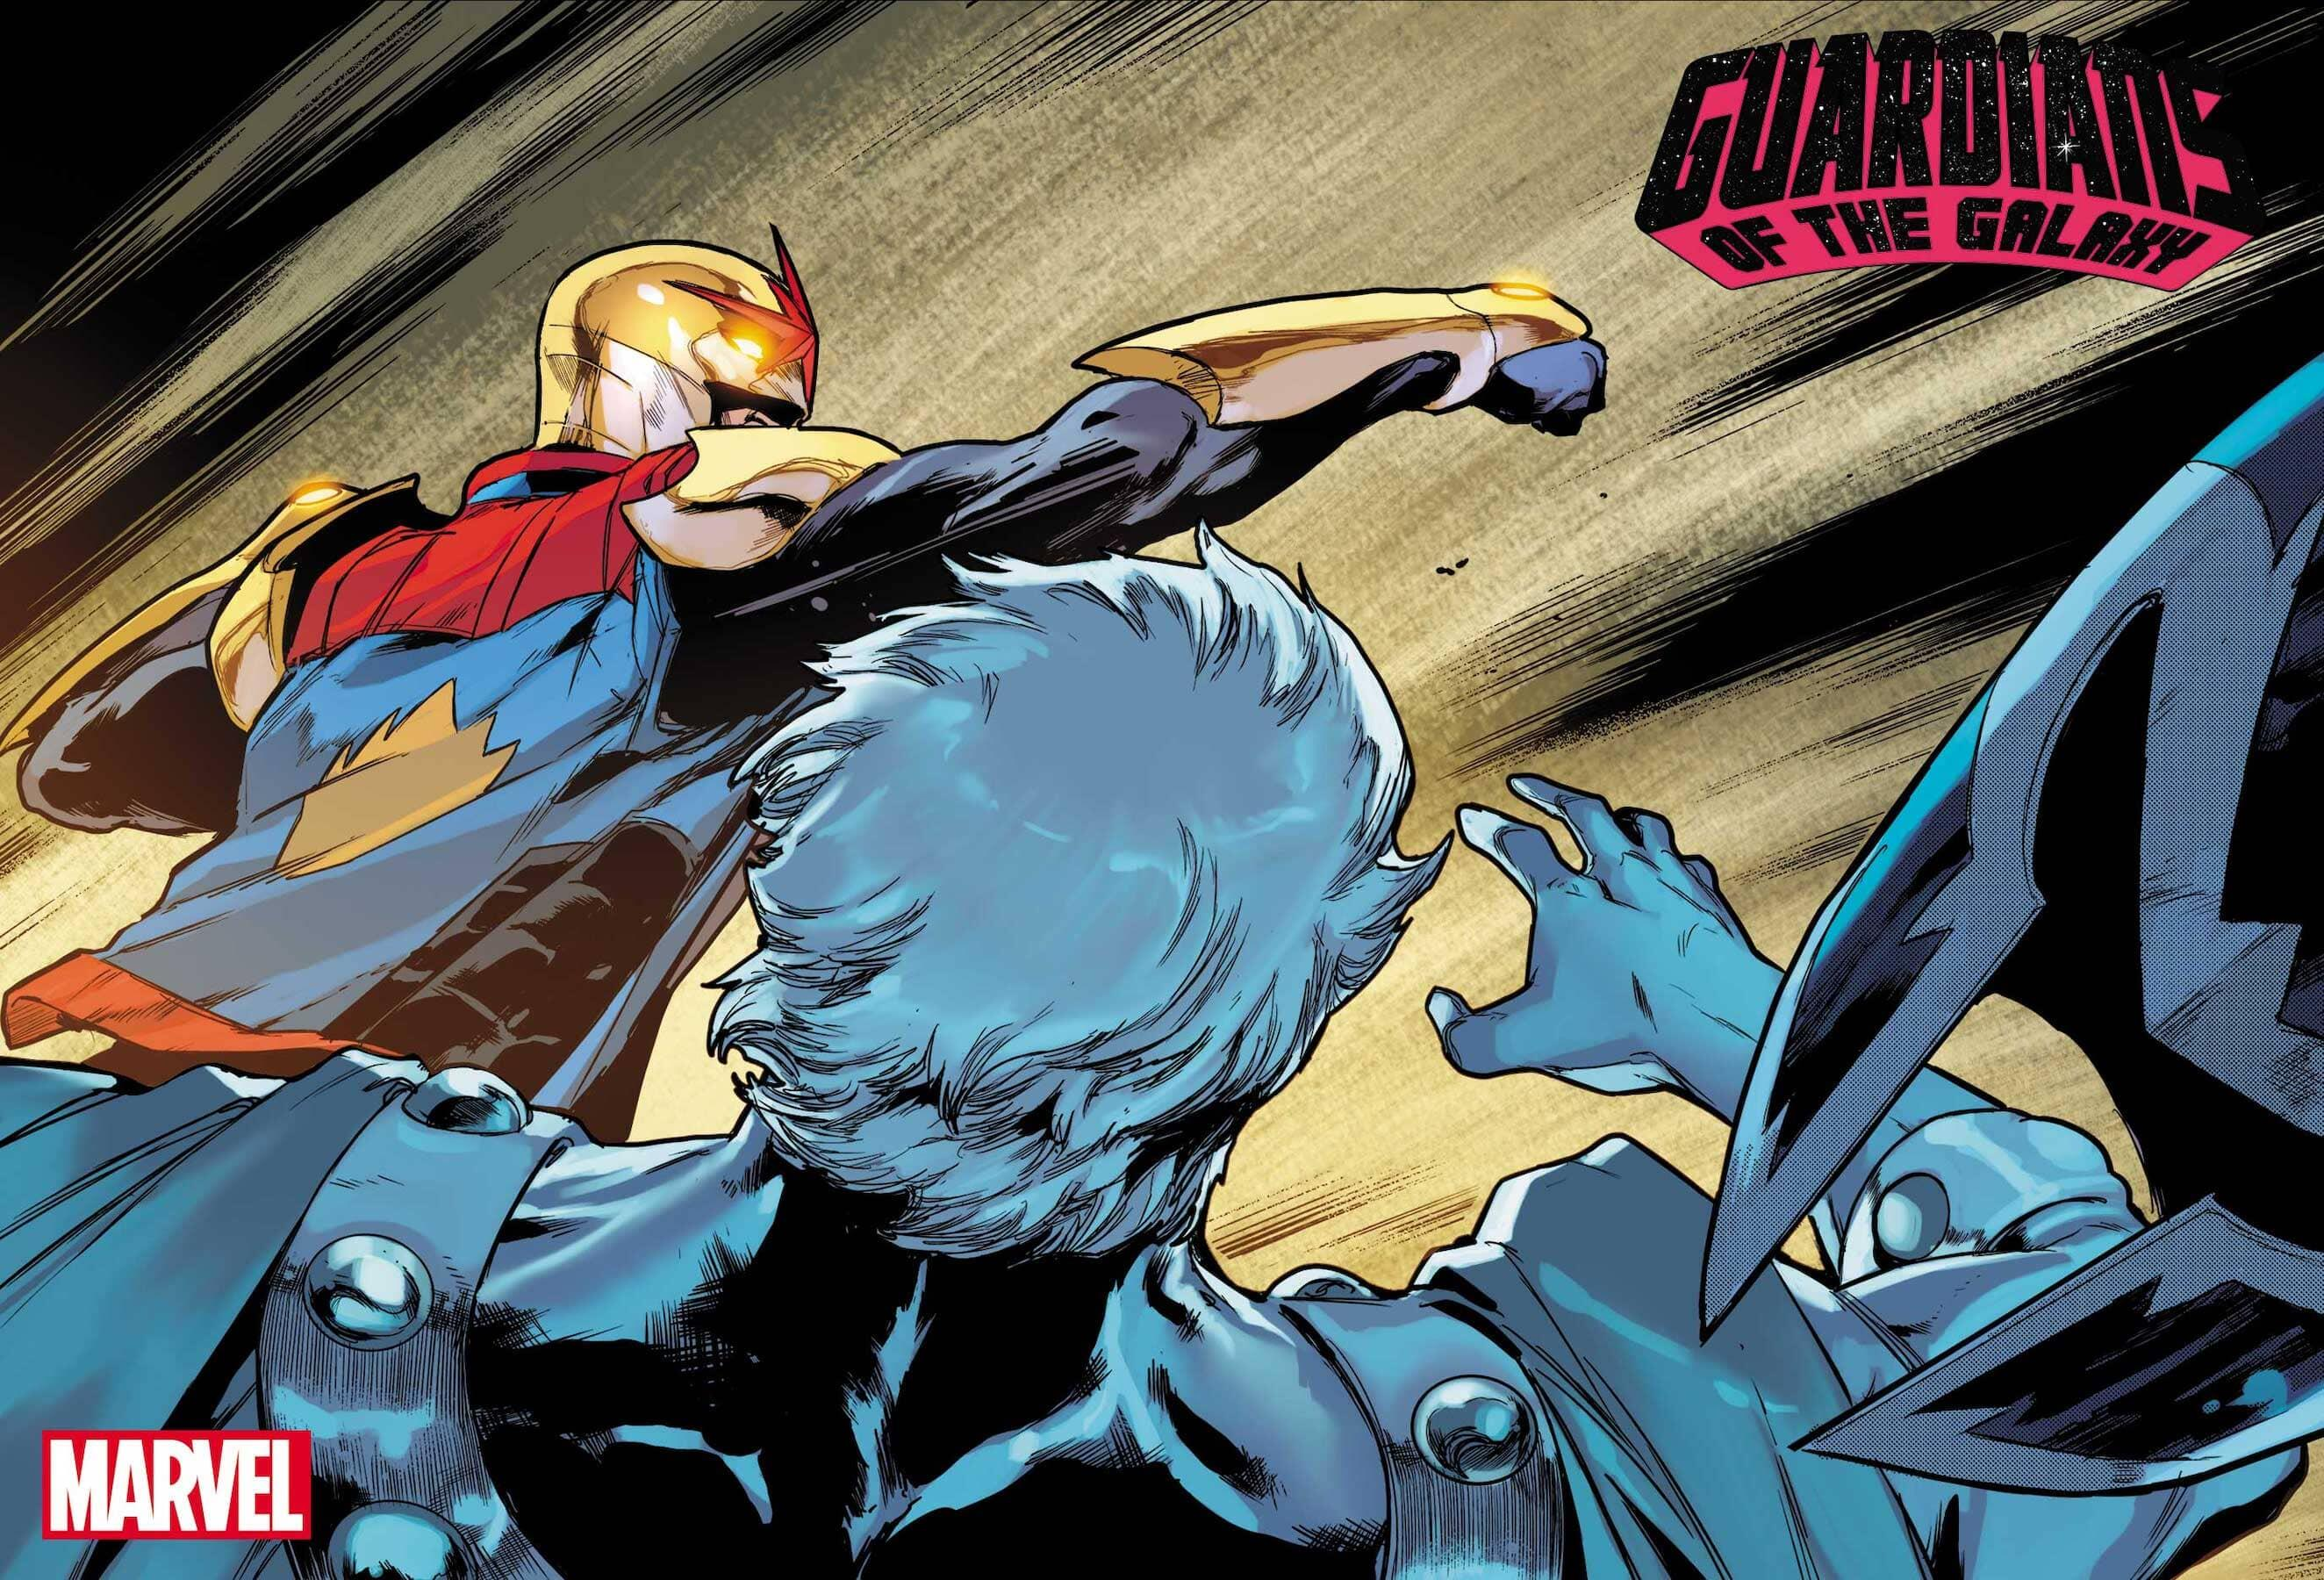 Nova punches out Magneto in Guardians of the Galaxy.